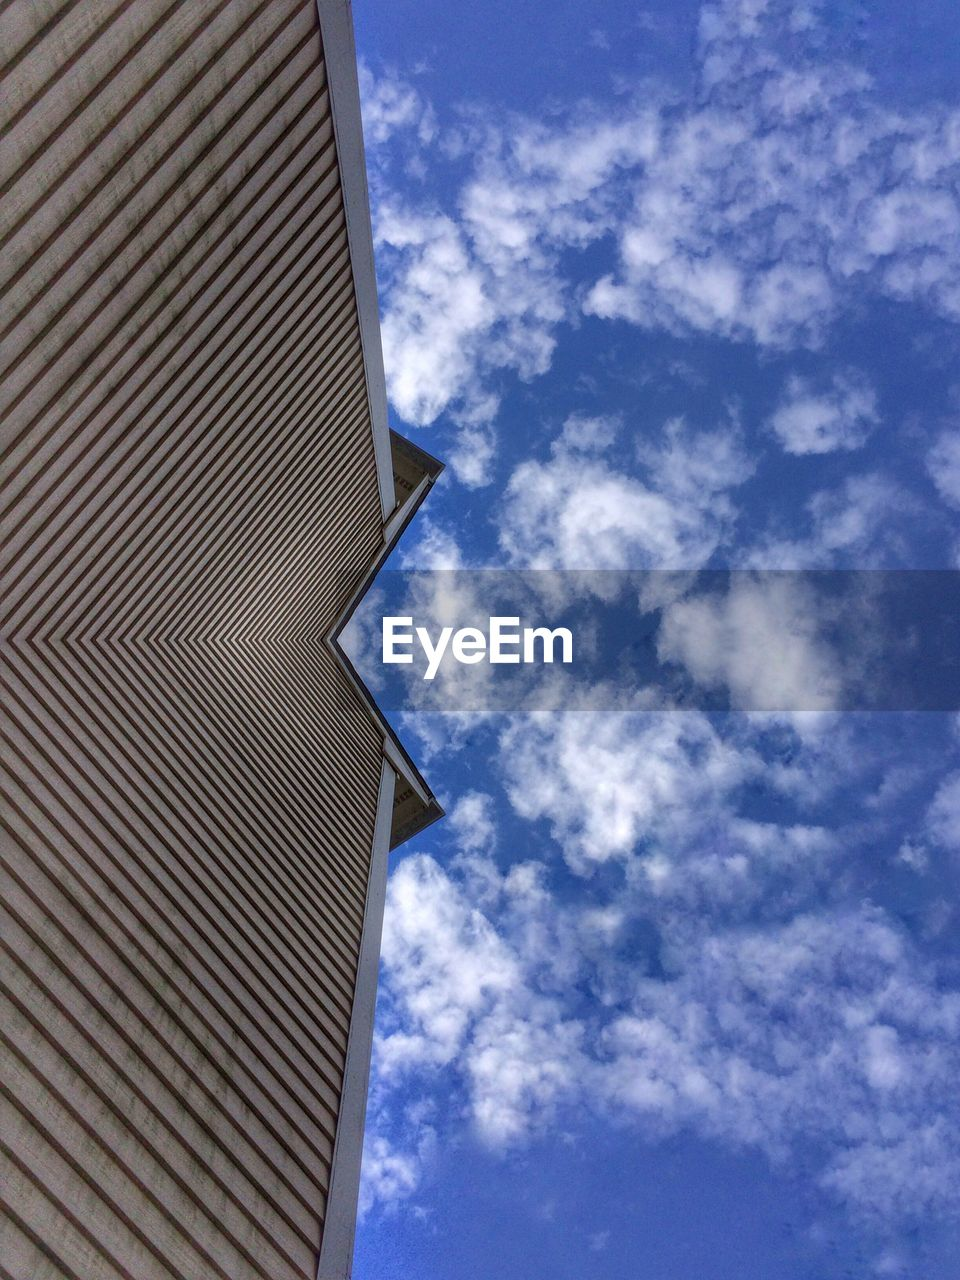 architecture, built structure, low angle view, sky, building exterior, cloud - sky, day, no people, modern, outdoors